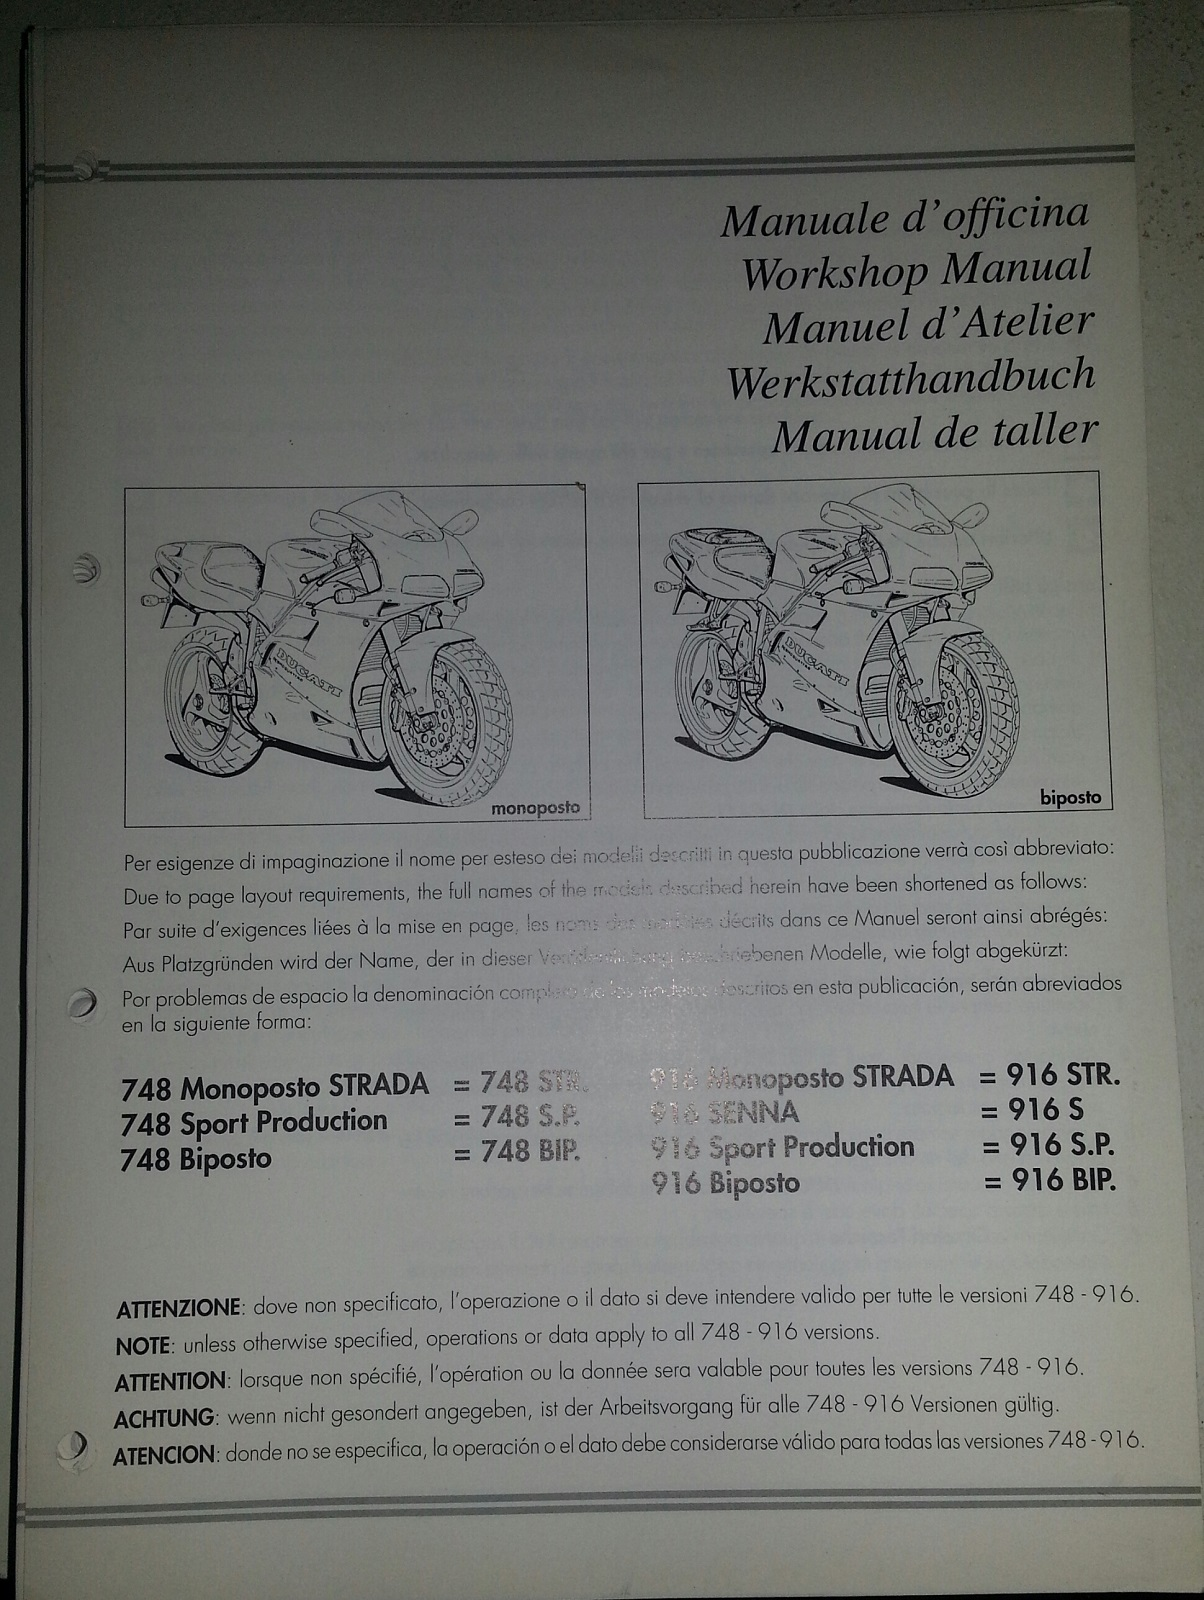 Ducati OEM 748-916 Workshop Manual 91470151A